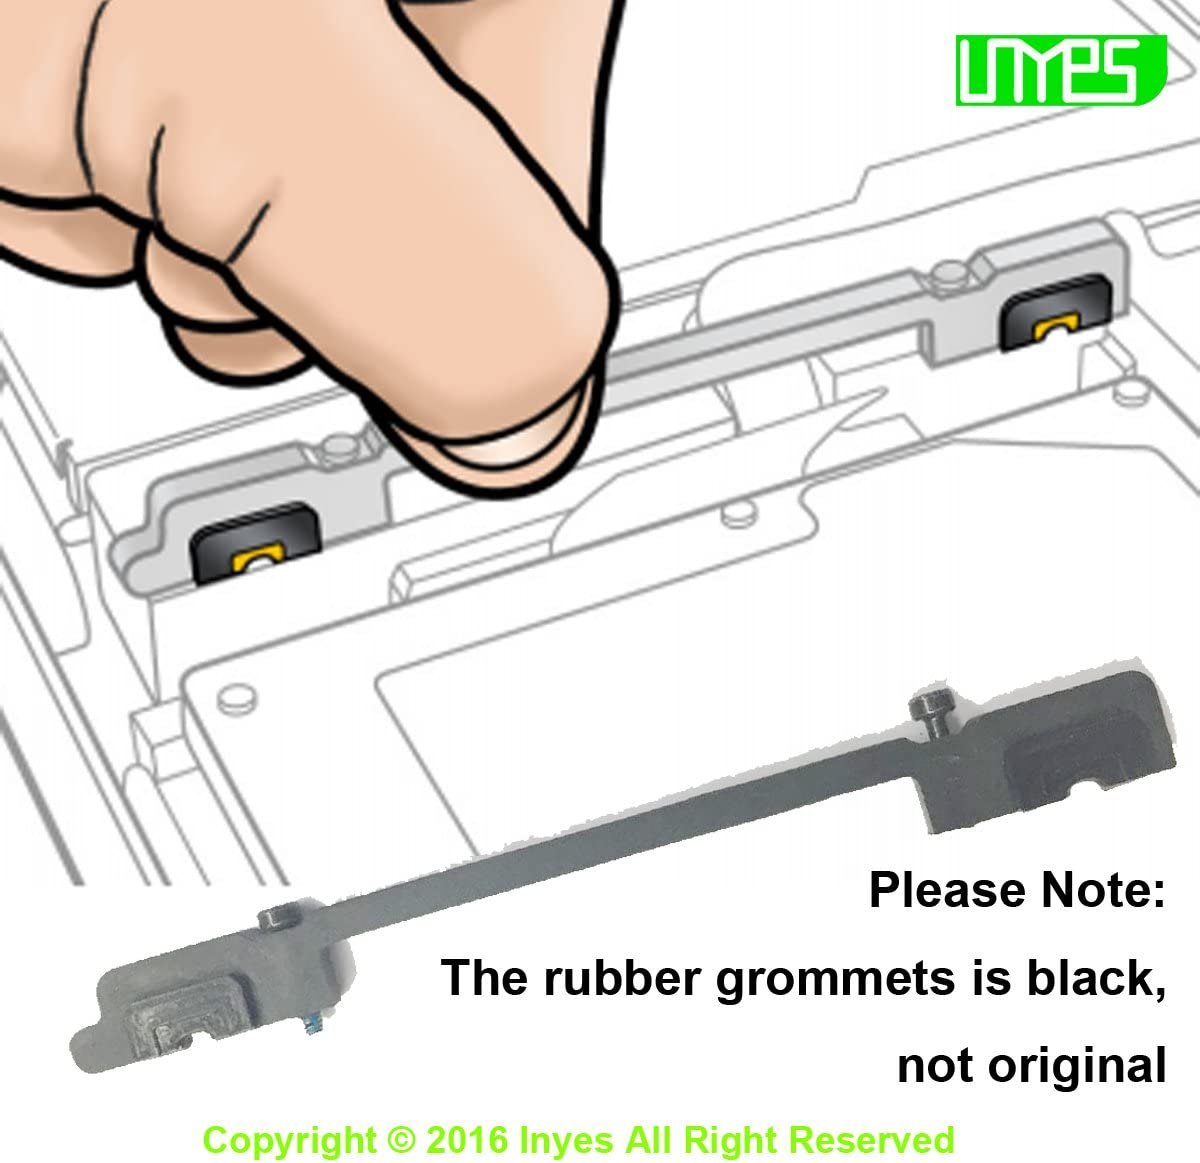 Hard/Drive/Bracket with Rubber Grommets gaskets Captive Screw for MacBook/Pro/13/A1278/15 A1286/2009/2010/2011/2012